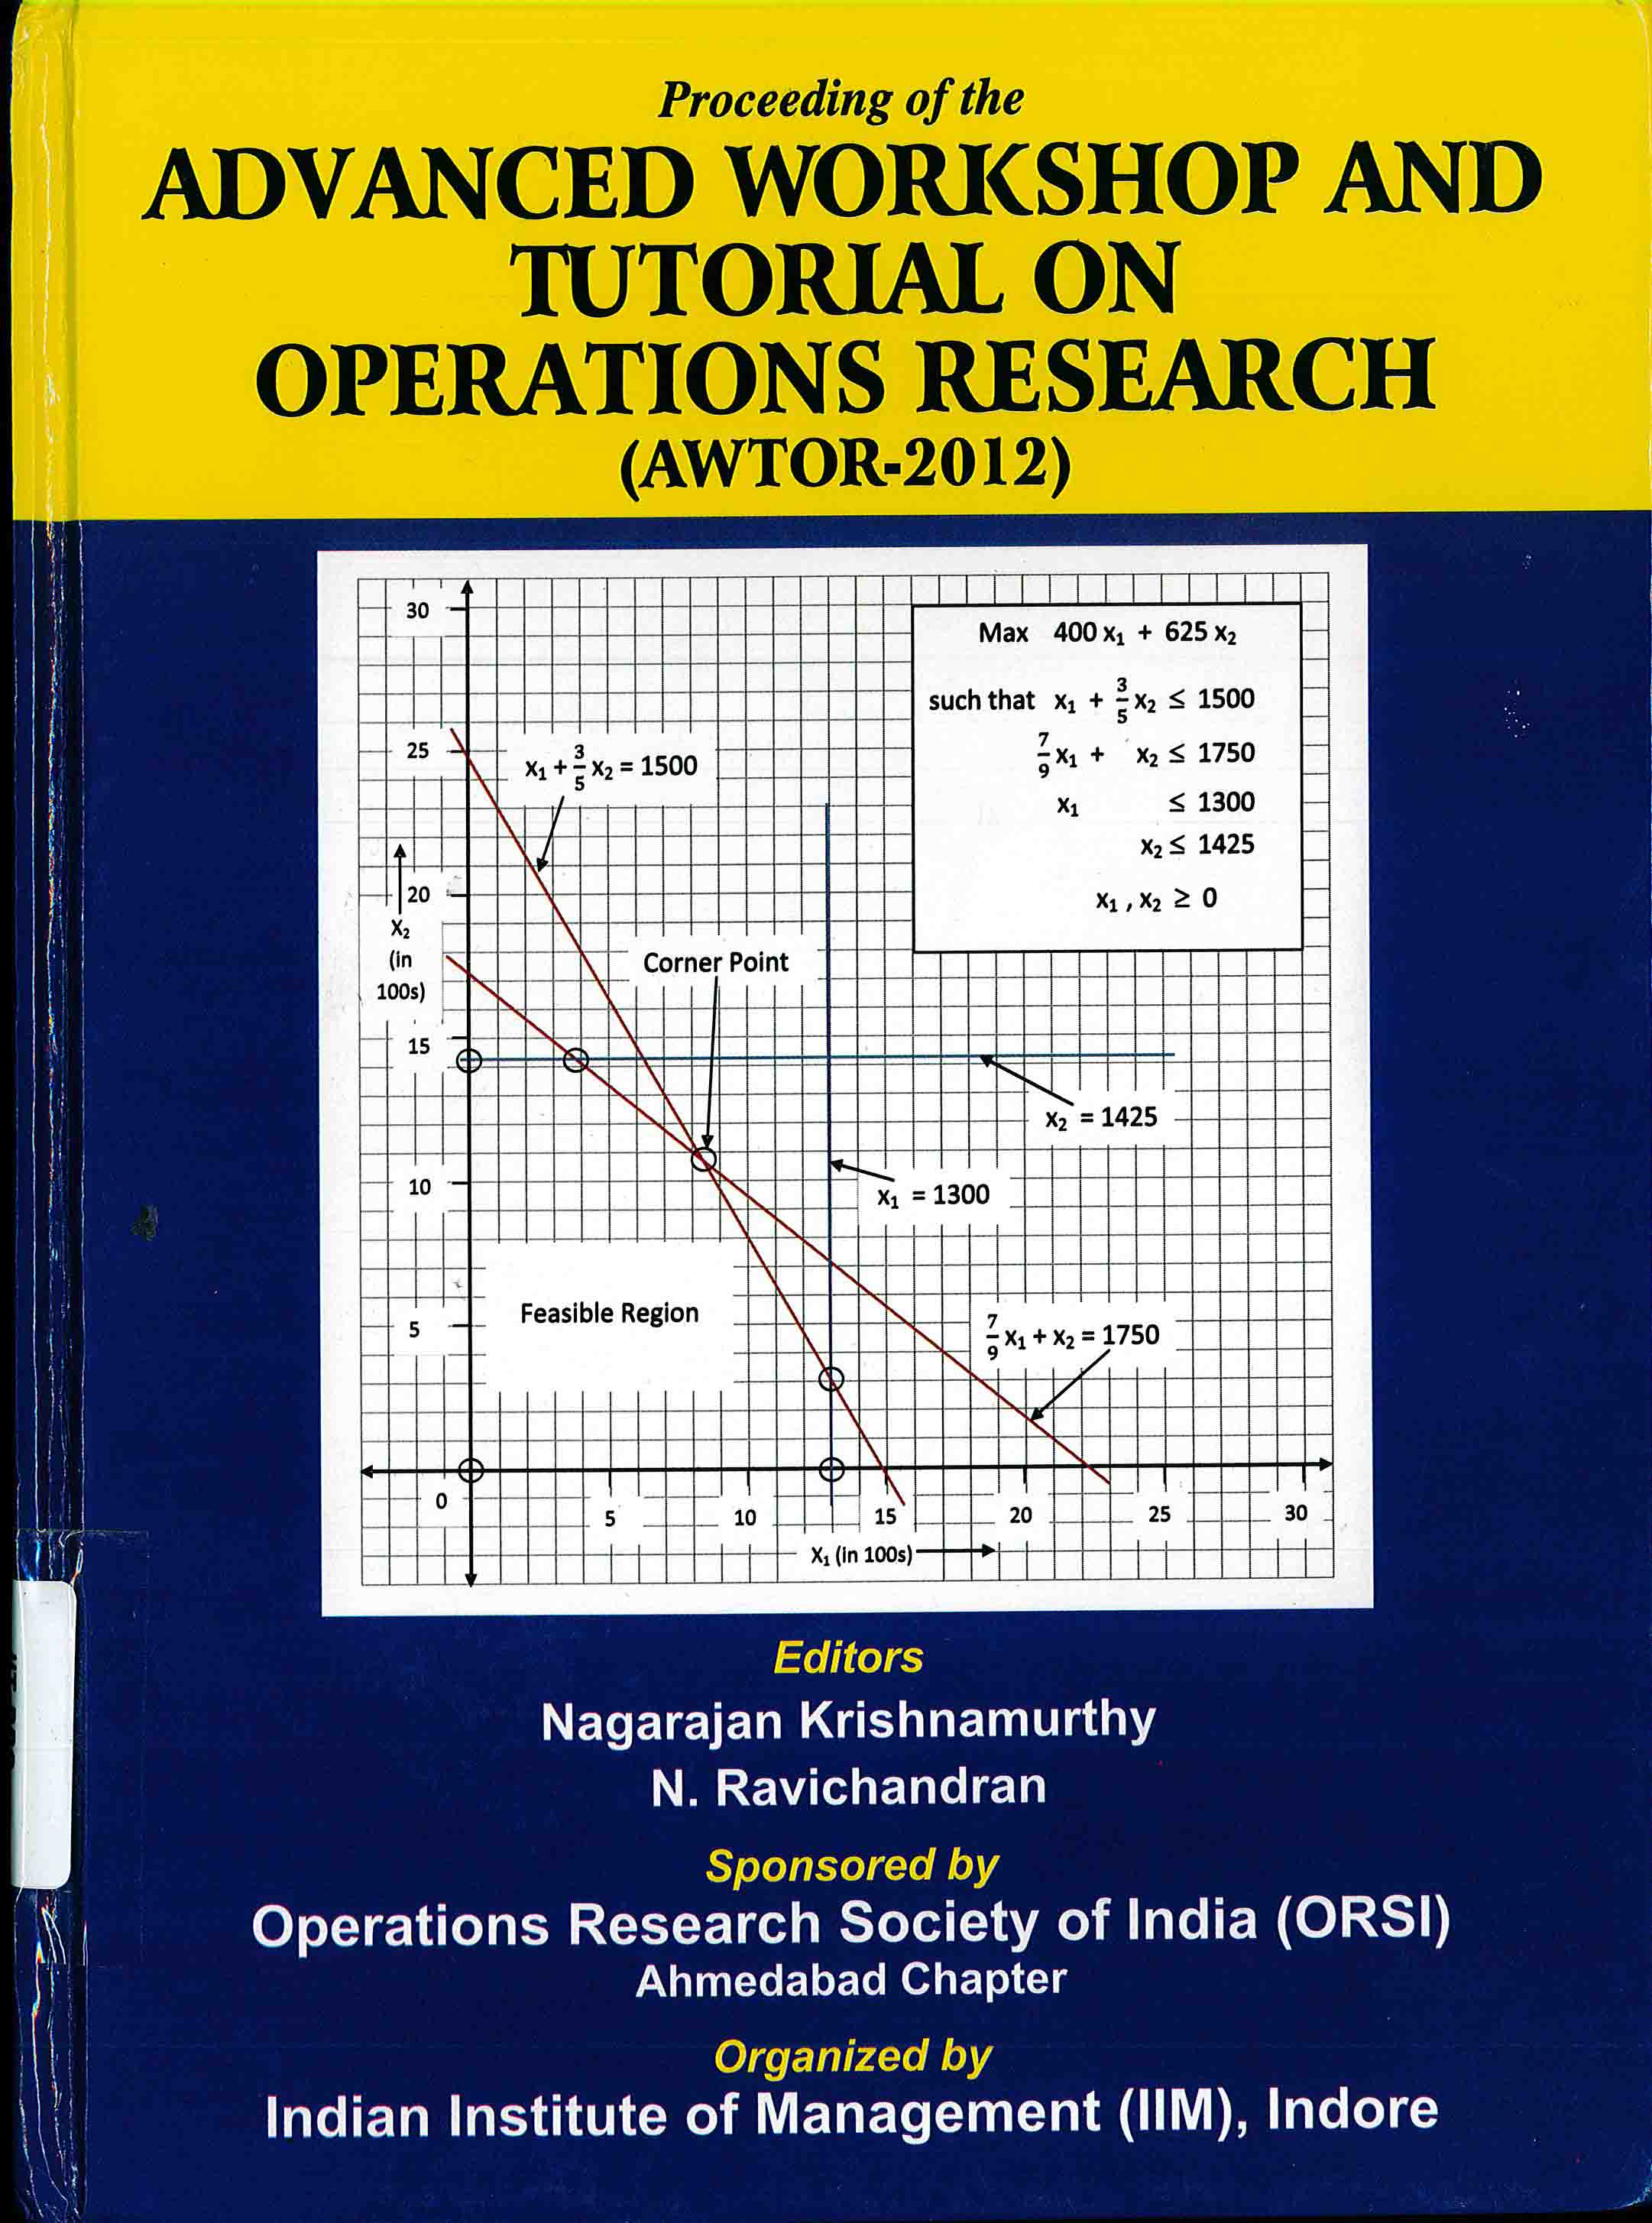 Advanced workshop and tutorial on operations research (AWTOR-2012)